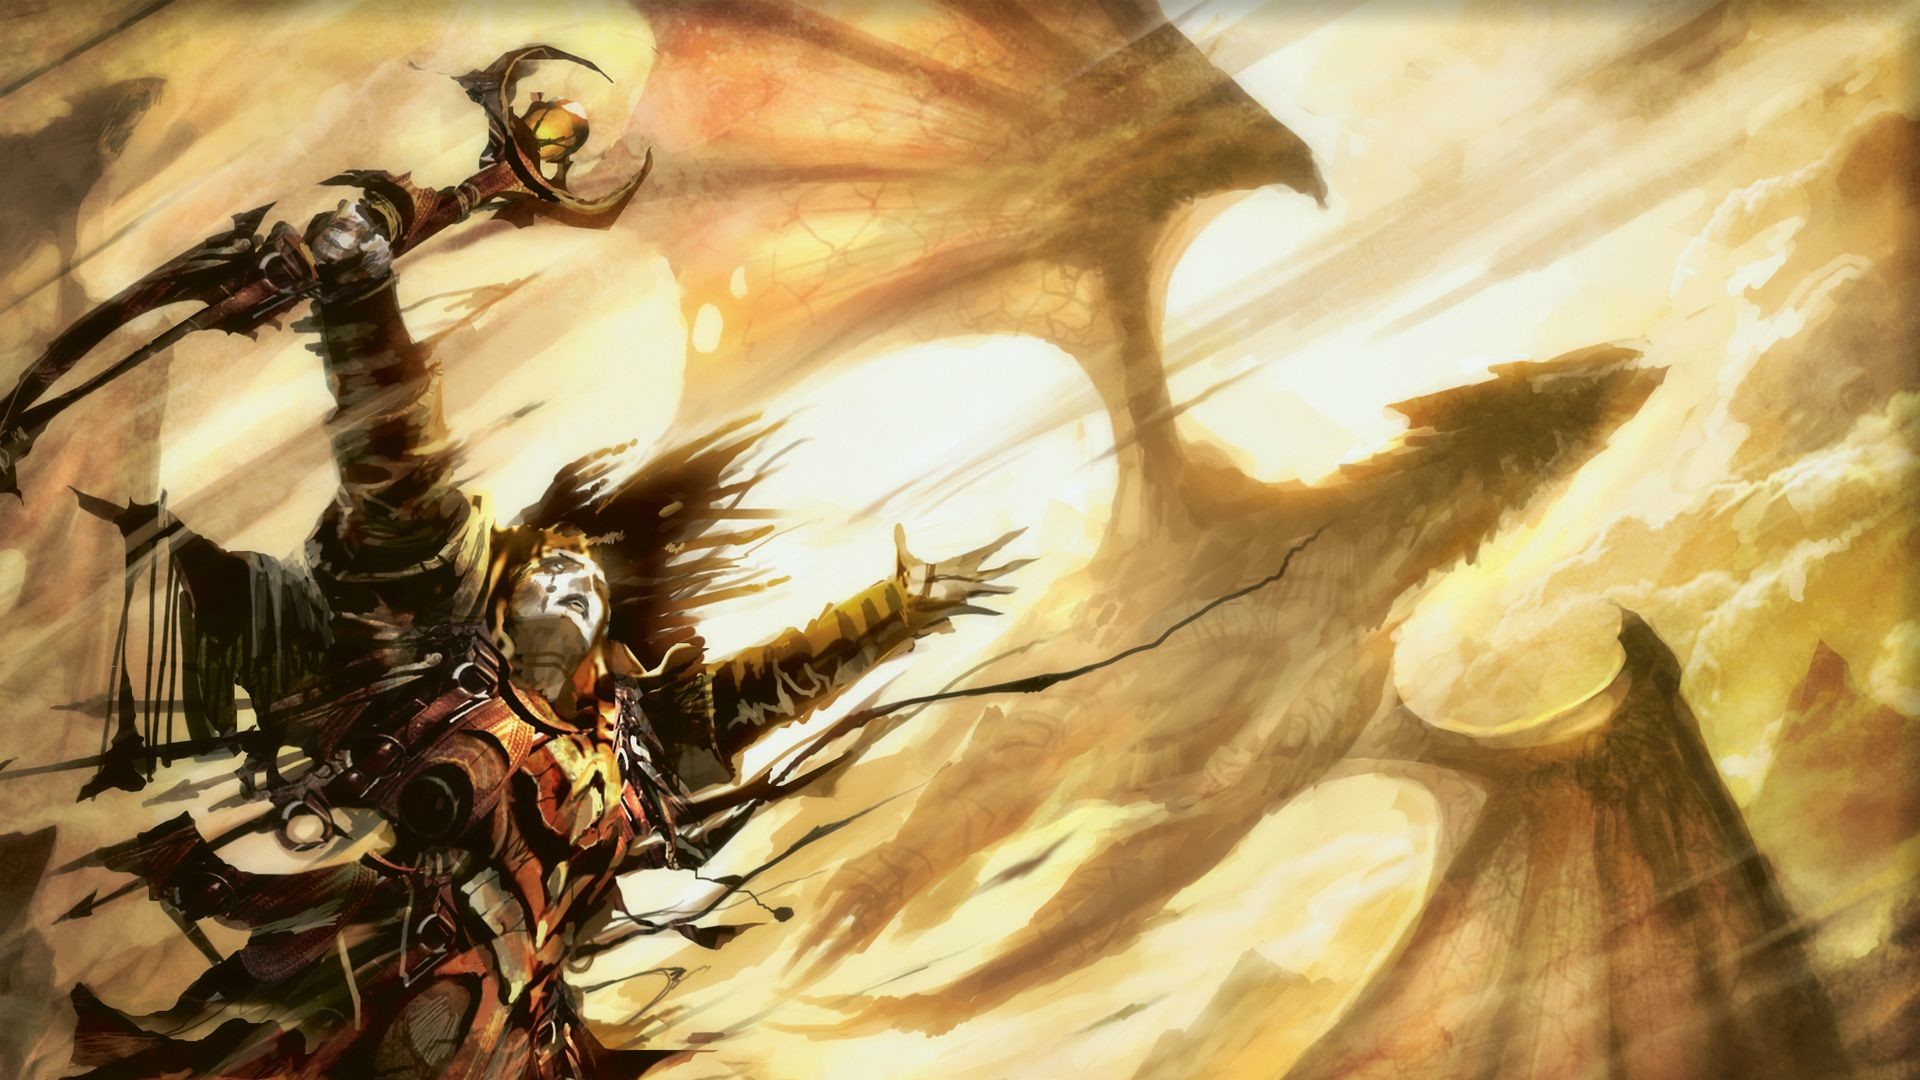 Res: 1920x1080, Magic: The Gathering - 150 Wallpapers ()